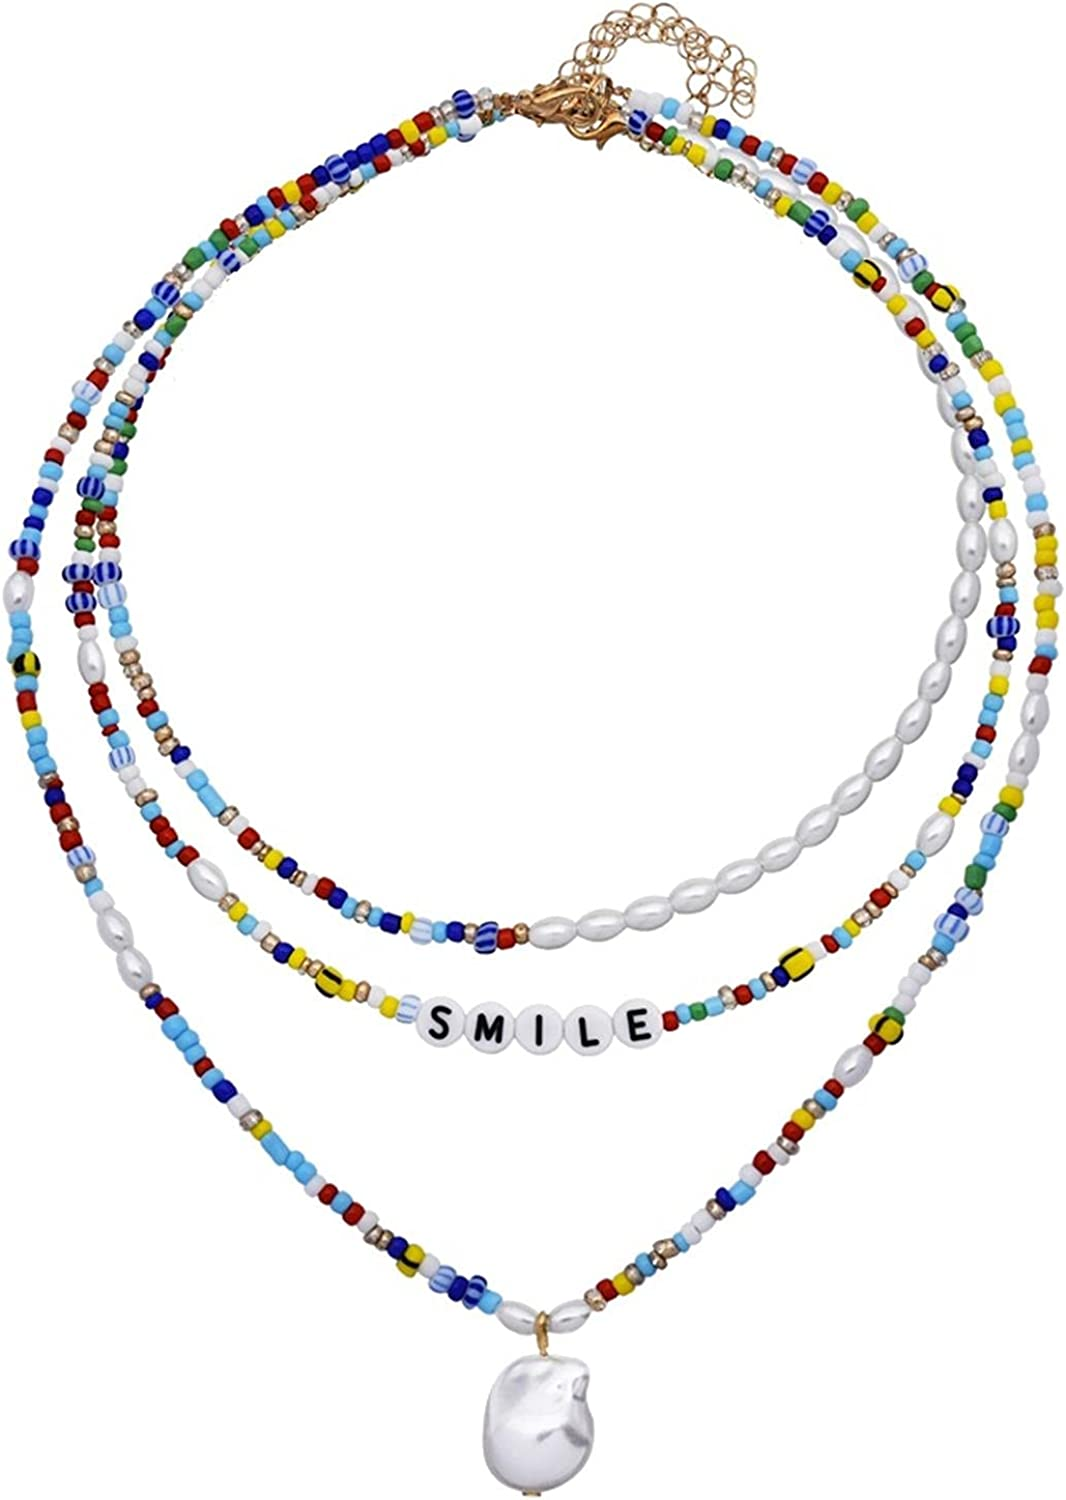 Colorful Beaded Multi Layer Short Clavicle Chain Choker Necklace Handmade Rainbow Seed Beads Choker Smile Letter Irregular Pearls Smiley Collar Jewelry for Women Girl